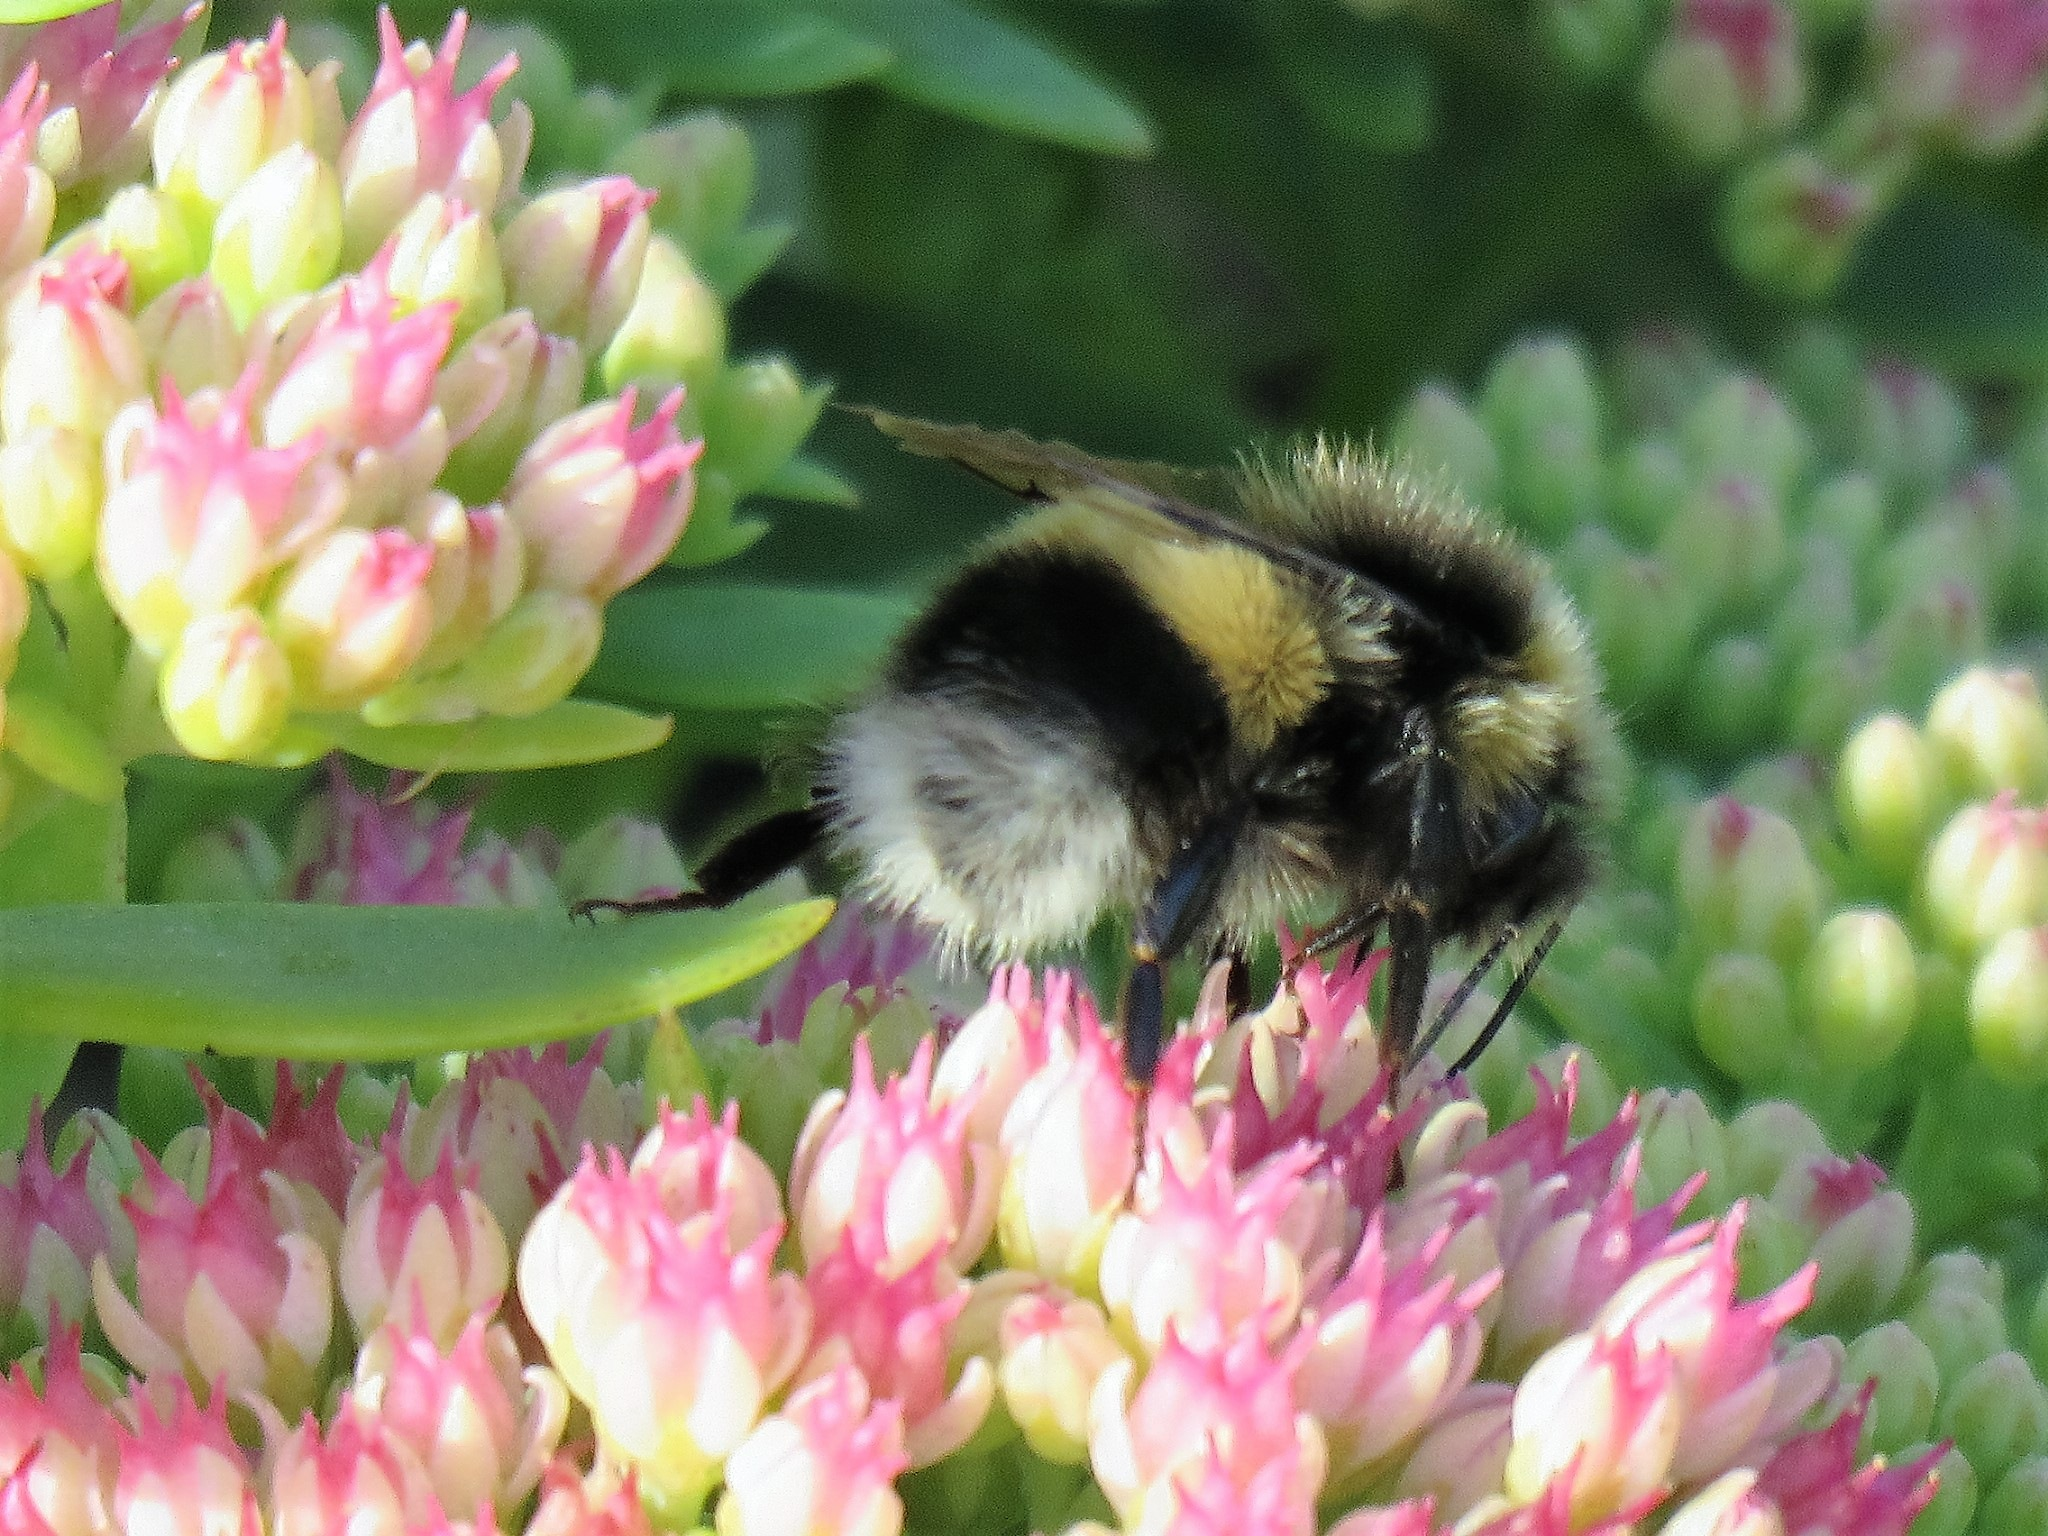 #Flower and Bumblebee by marit